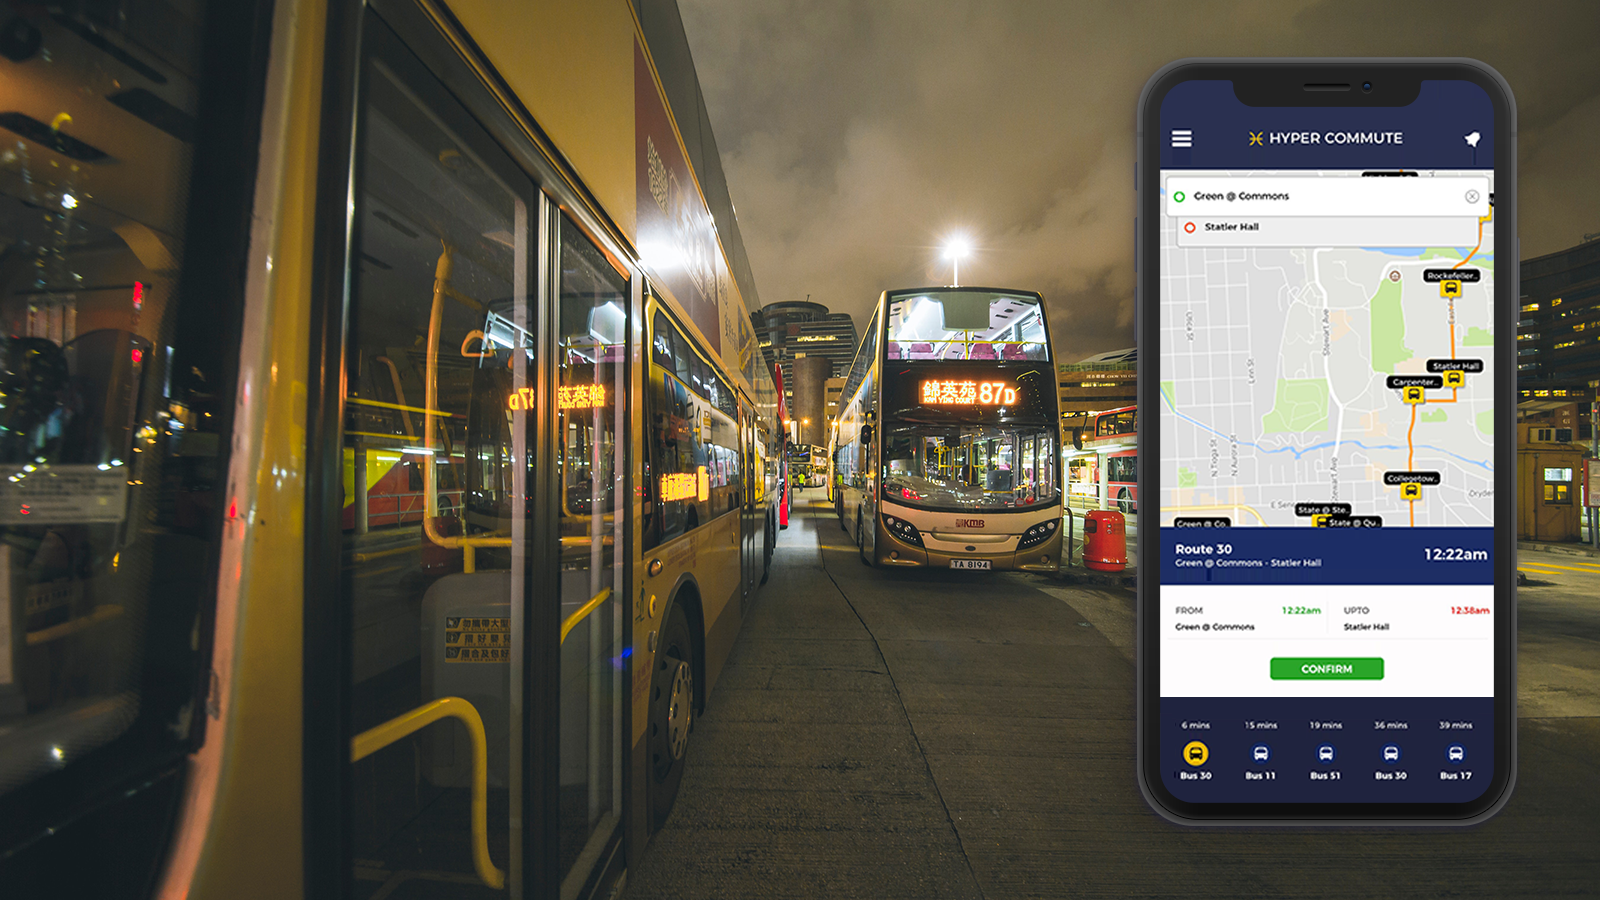 Public transits and mobile screen showing the image of hyper commute app